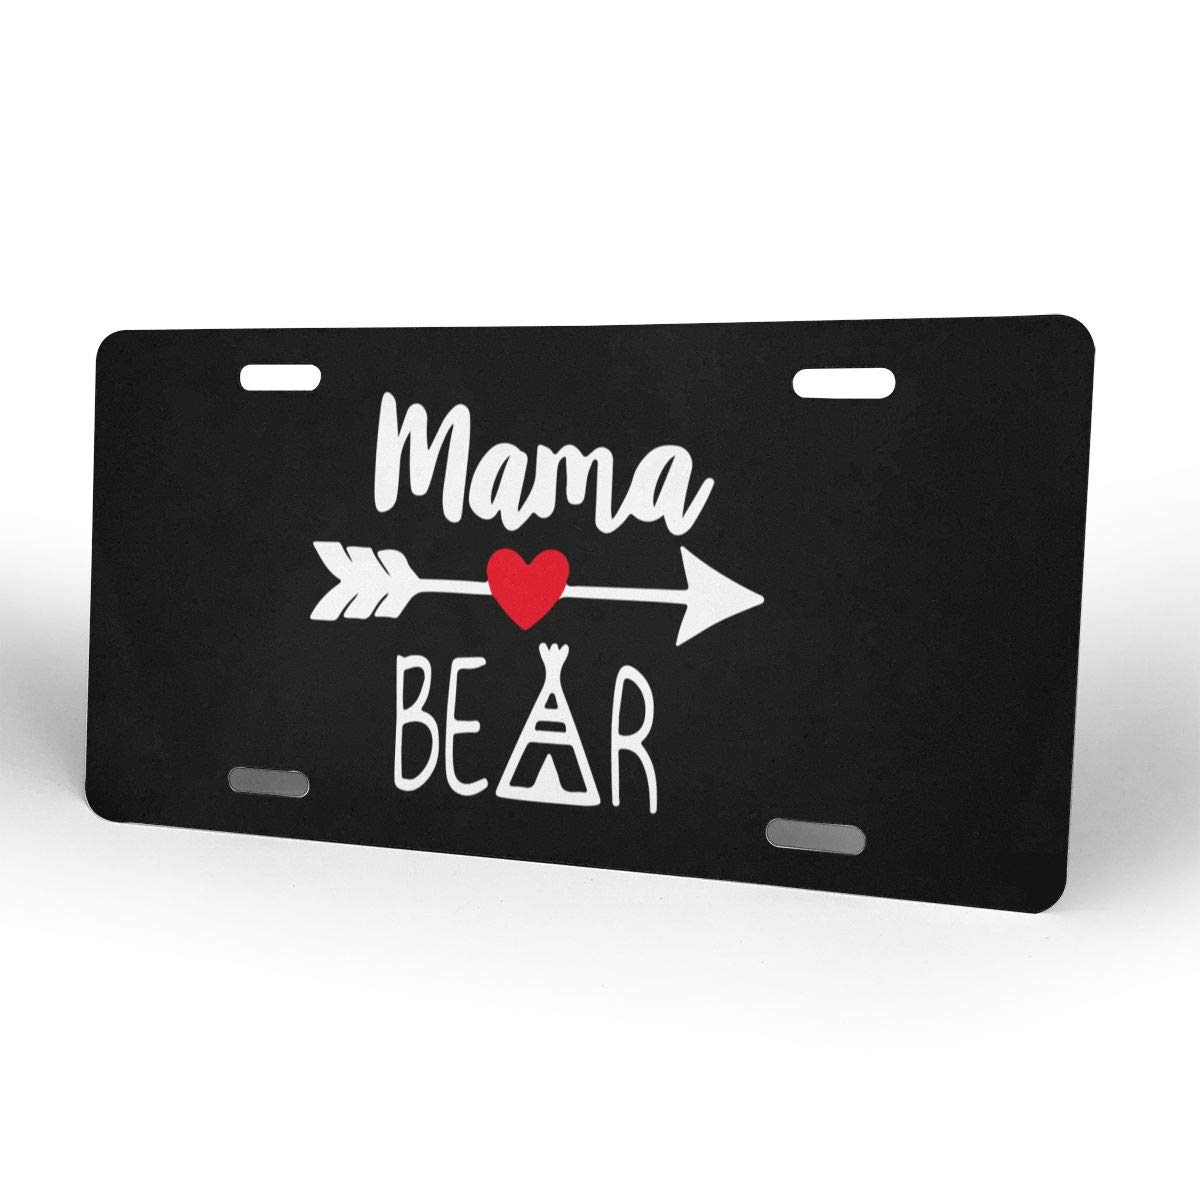 Mama Bear Cool License Plate Decorative Front Plate 6 X 12 Inch